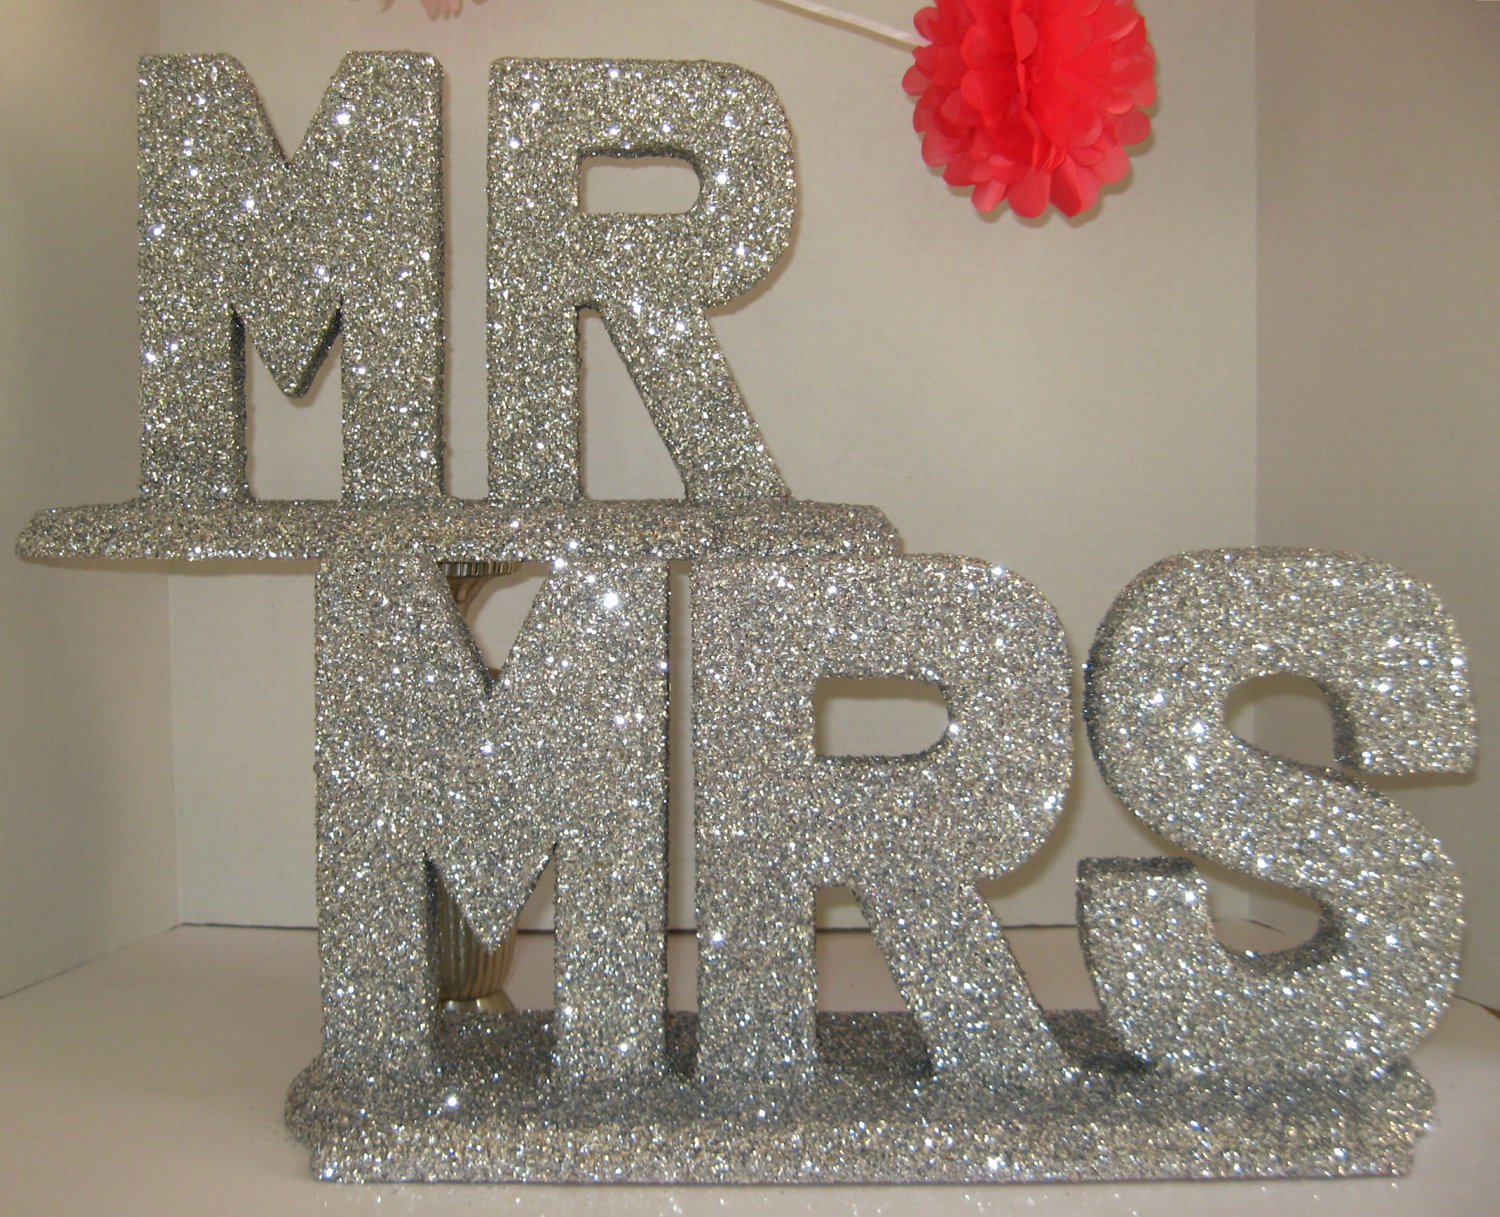 Creative-wedding-ideas-from-etsy-mr-and-mrs-decor-sparkly-silver-sign.original